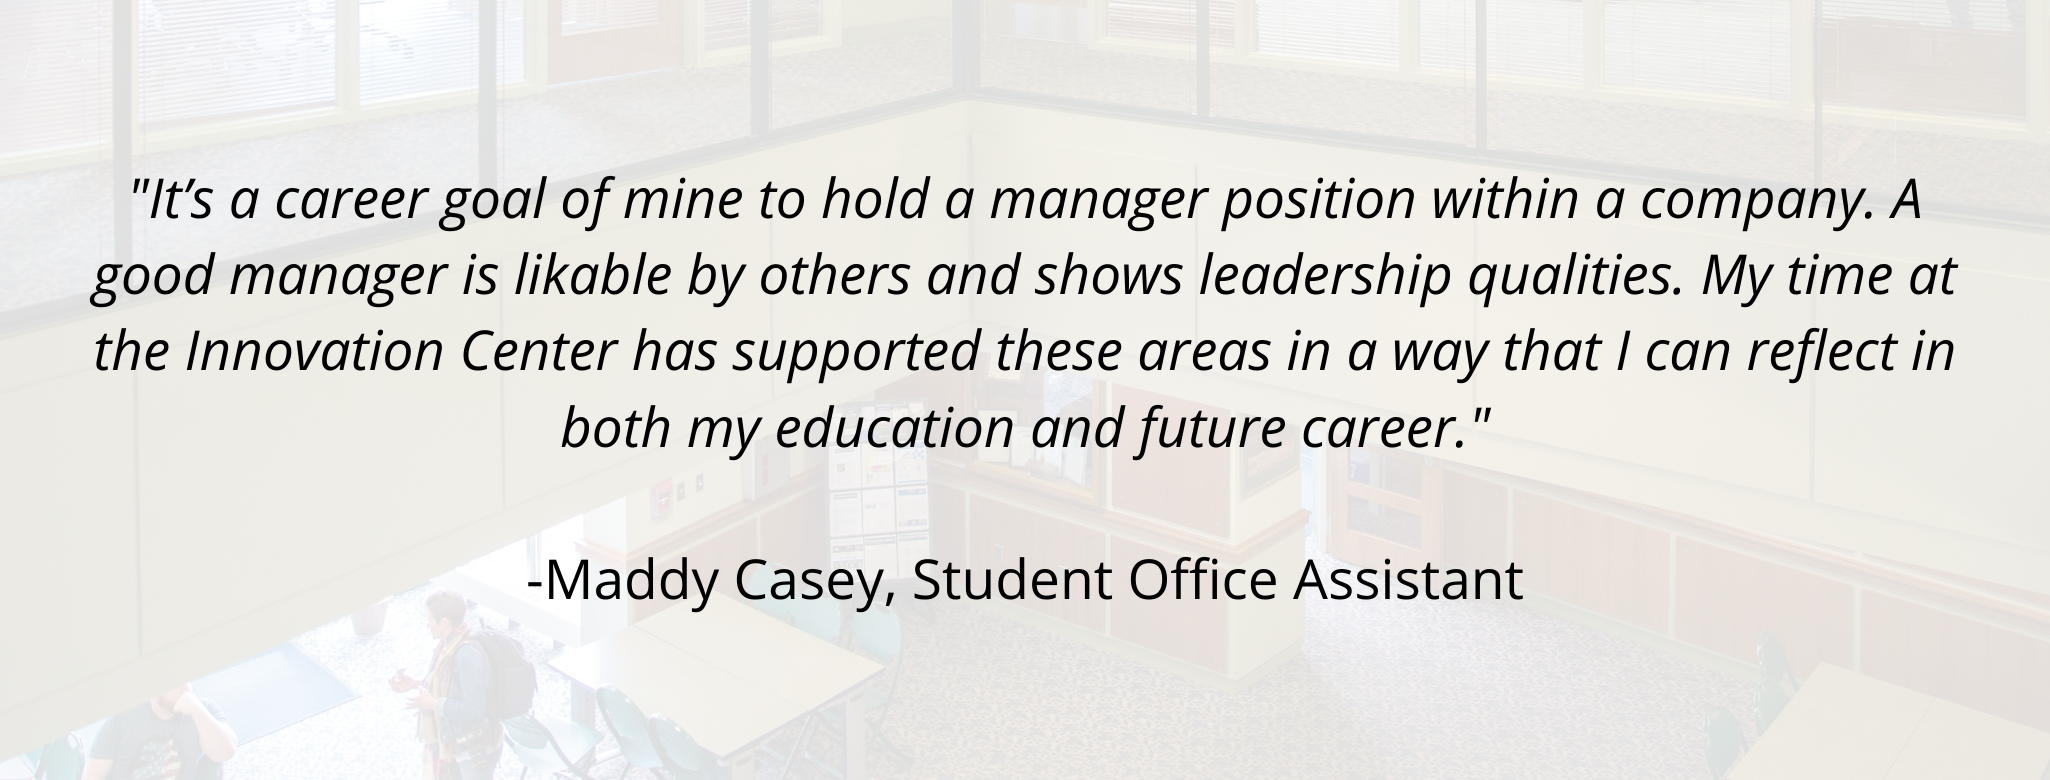 """""""It's a career goal of mine to hold a manager position within a company. A good manager is likable by others and shows leadership qualities. My time at the Innovation Center has supported these areas in a way that I can reflect in both my education and future career.""""  -Maddy Casey, Student Office Assistant"""